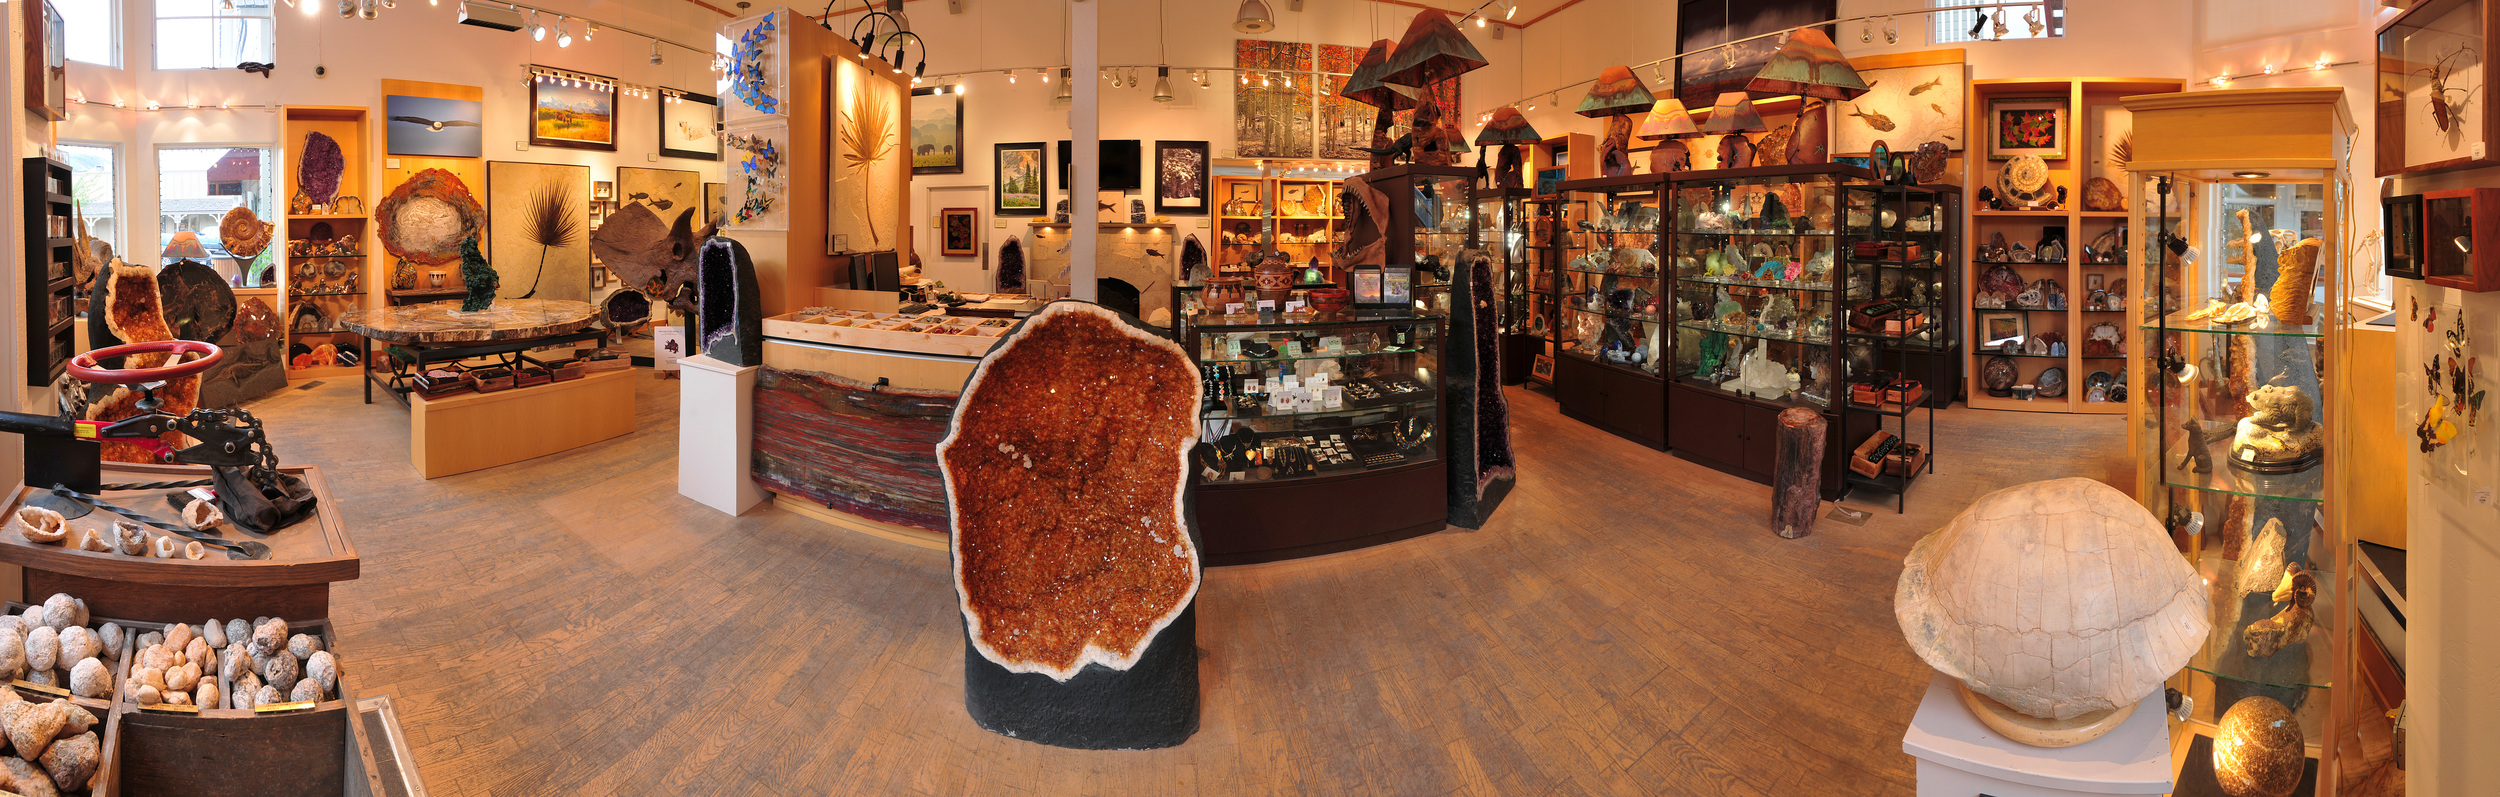 Jackson hole, WY Gallery